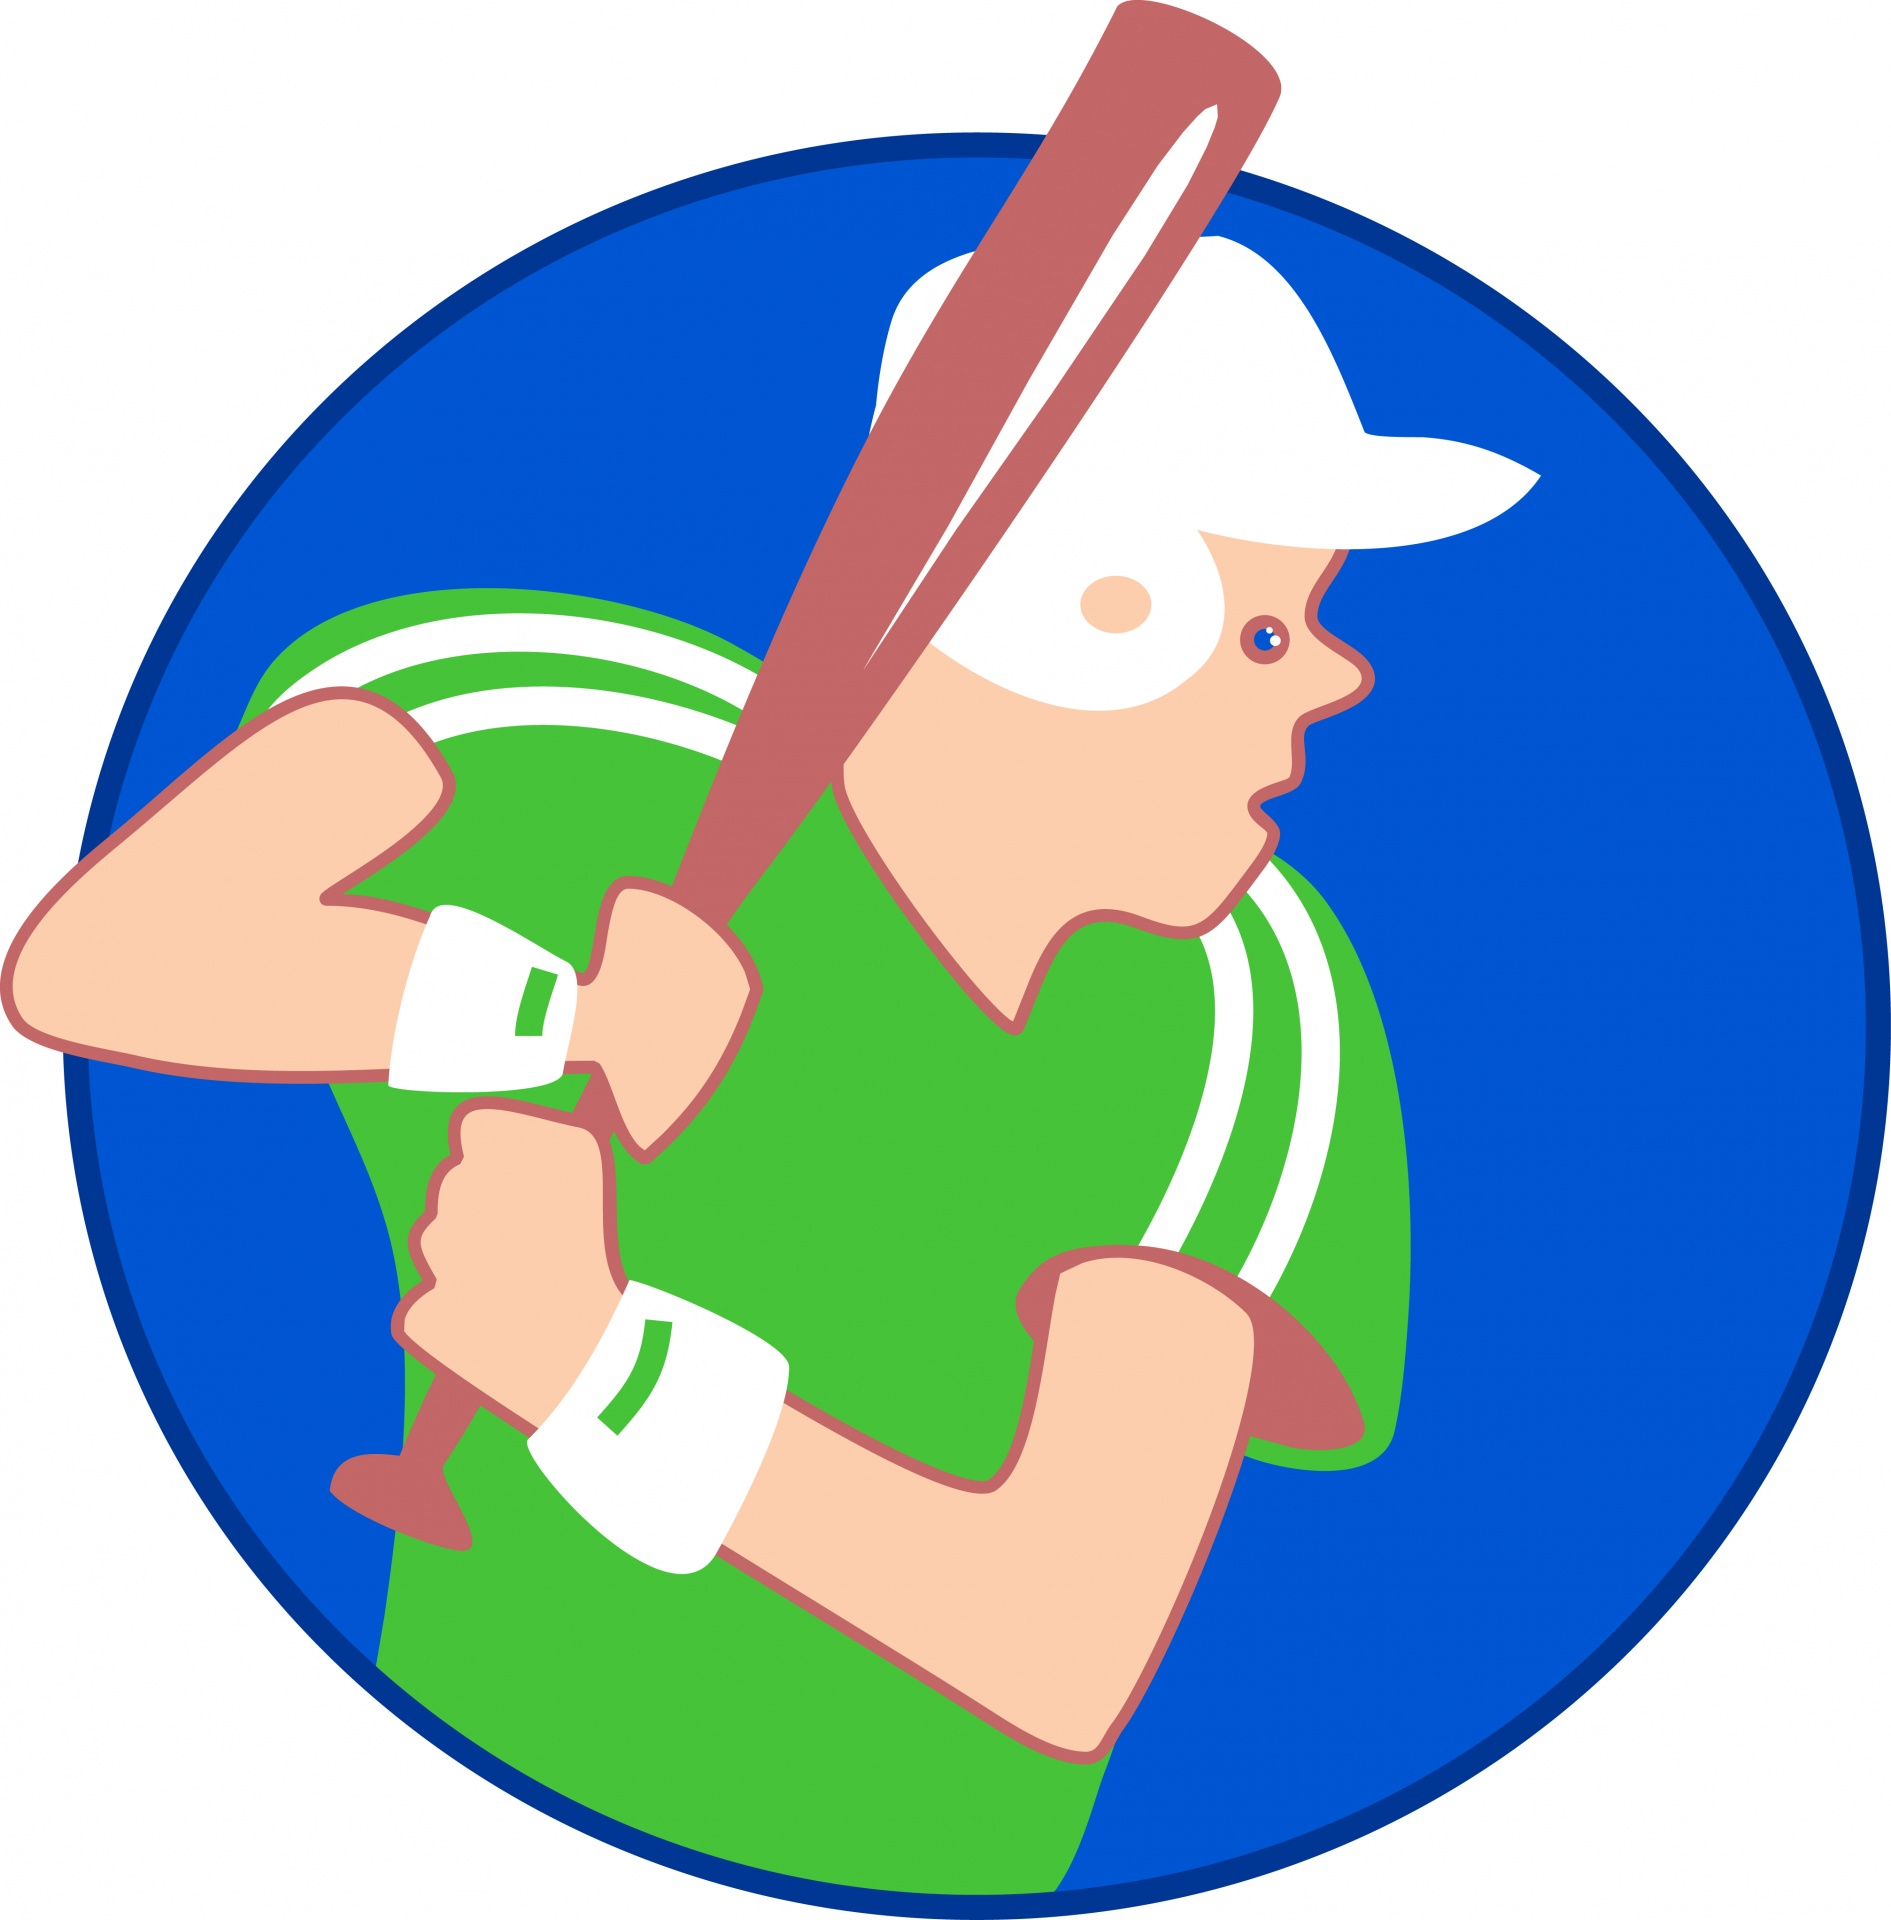 Baseball clipart. Player with a